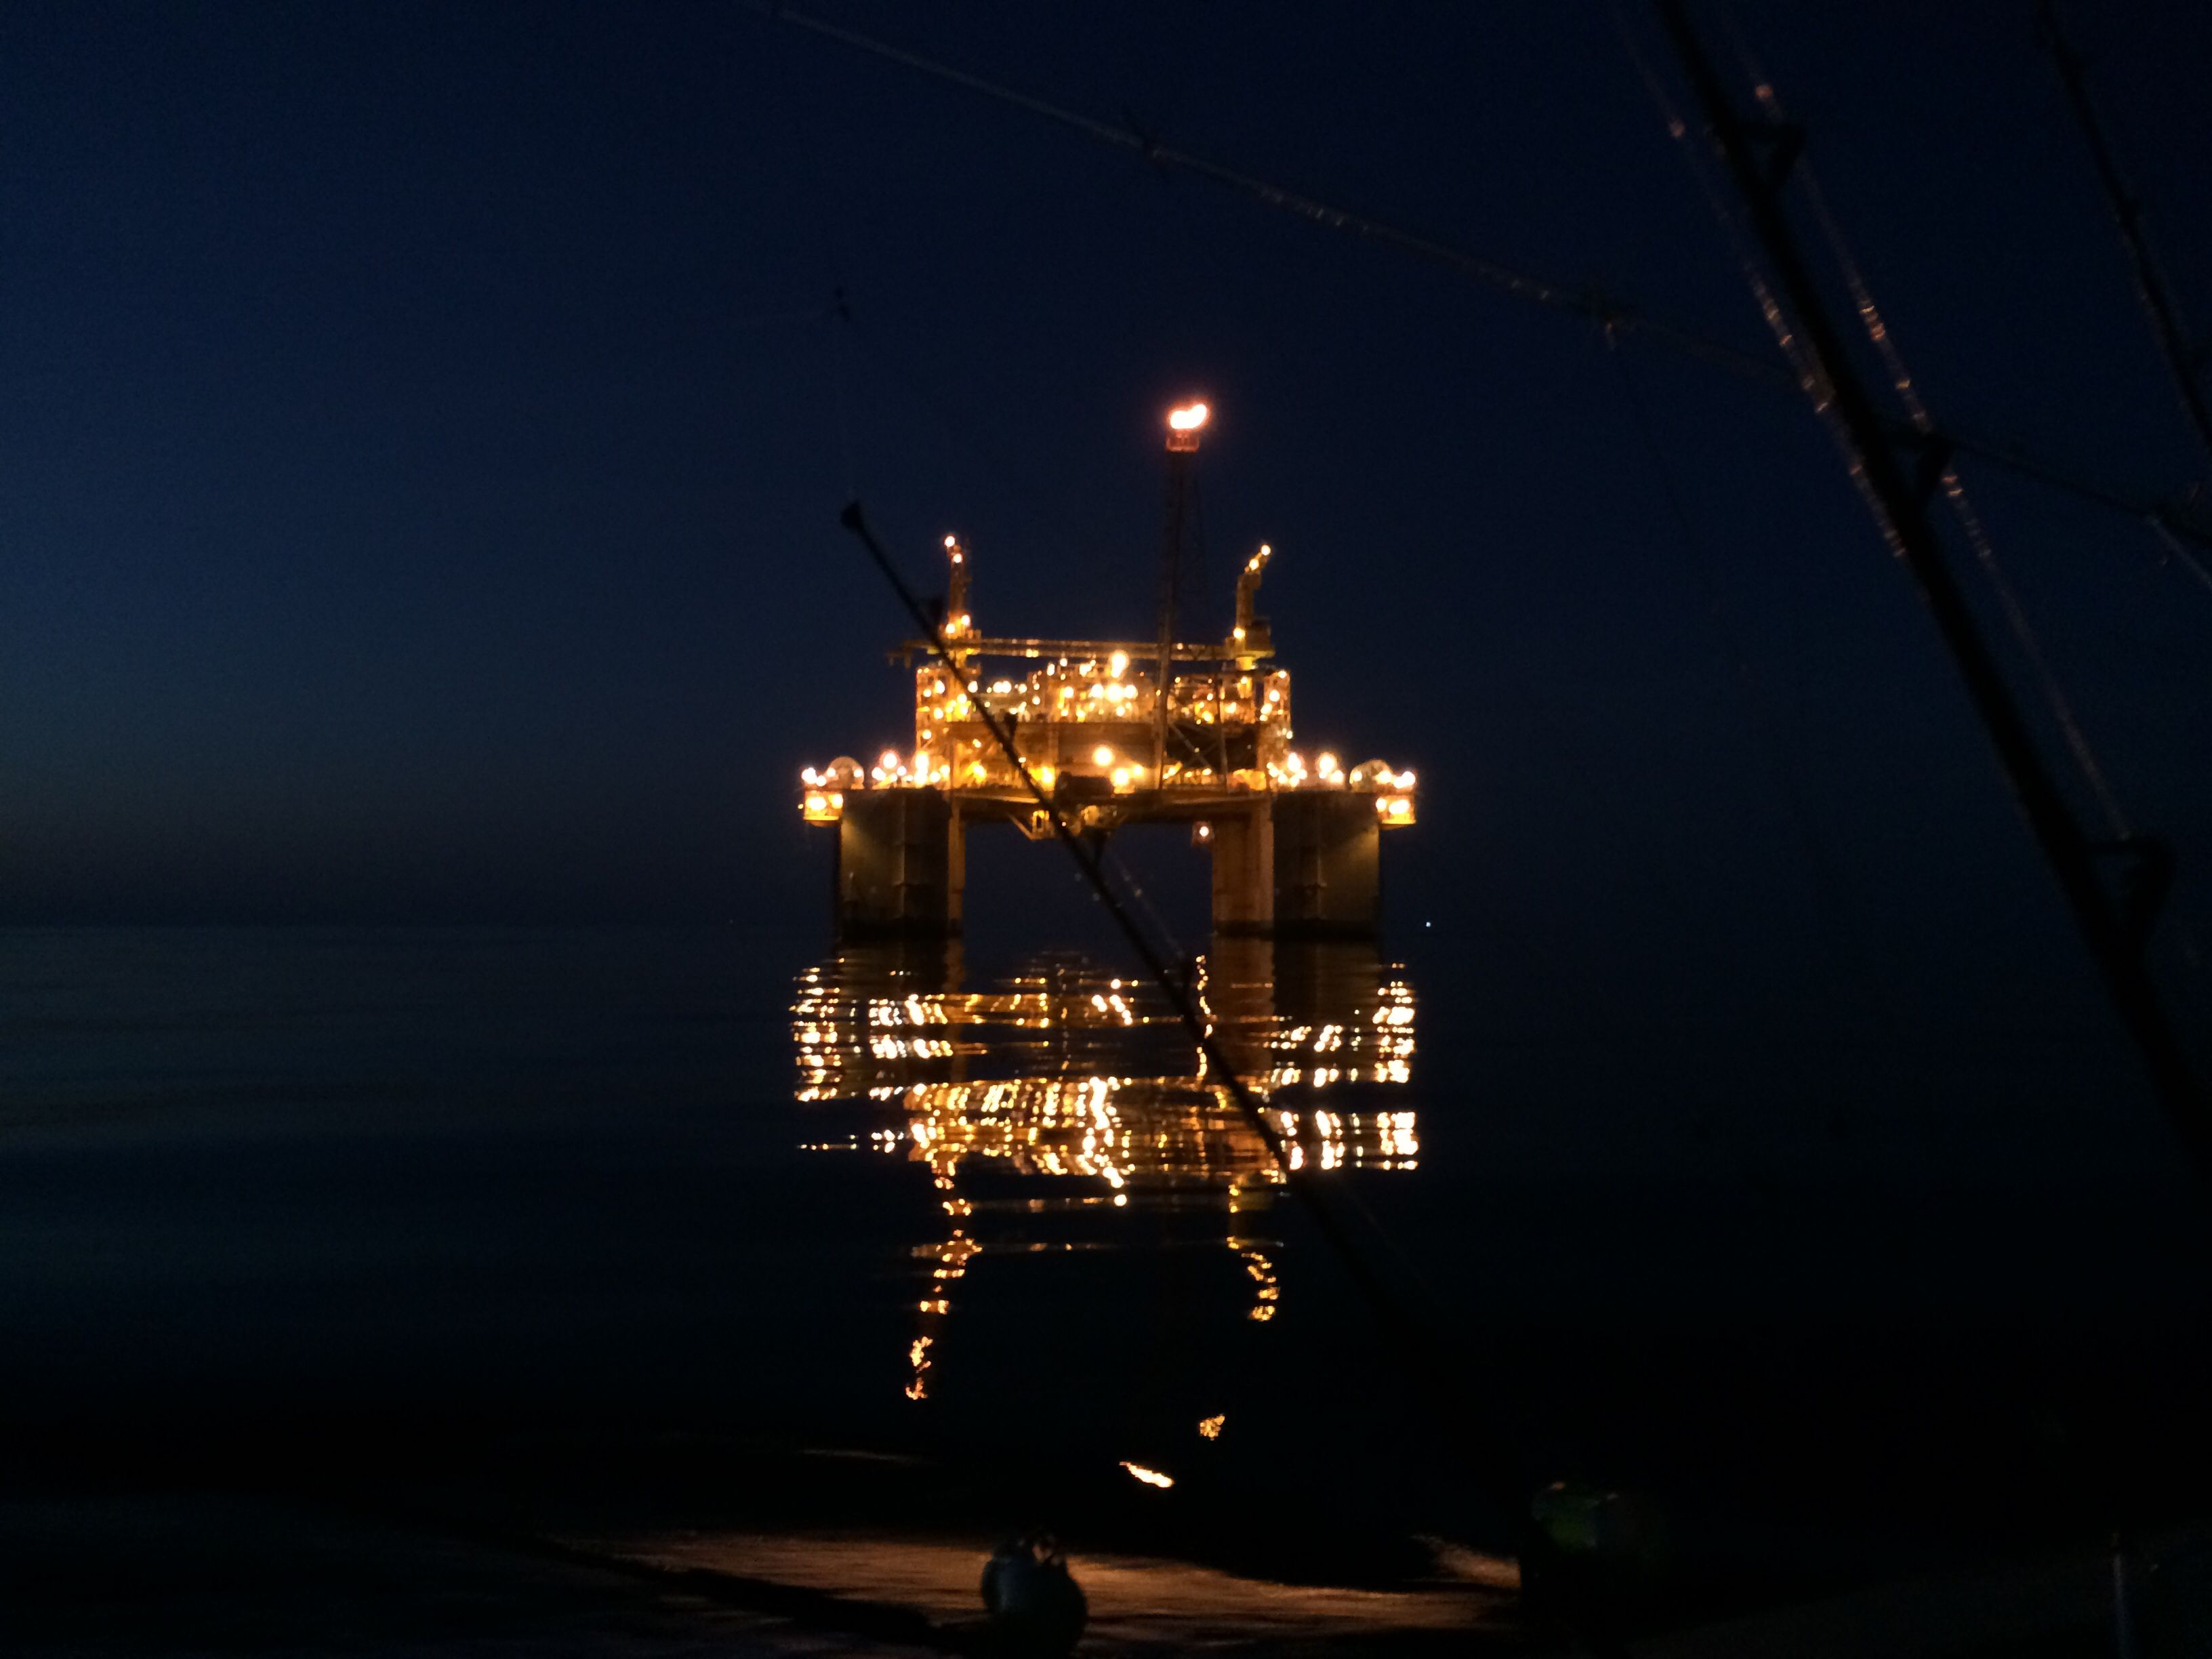 Gulf Coast Oil Rig at Night | Saltwater Fishing | Fishing rigs, Oil